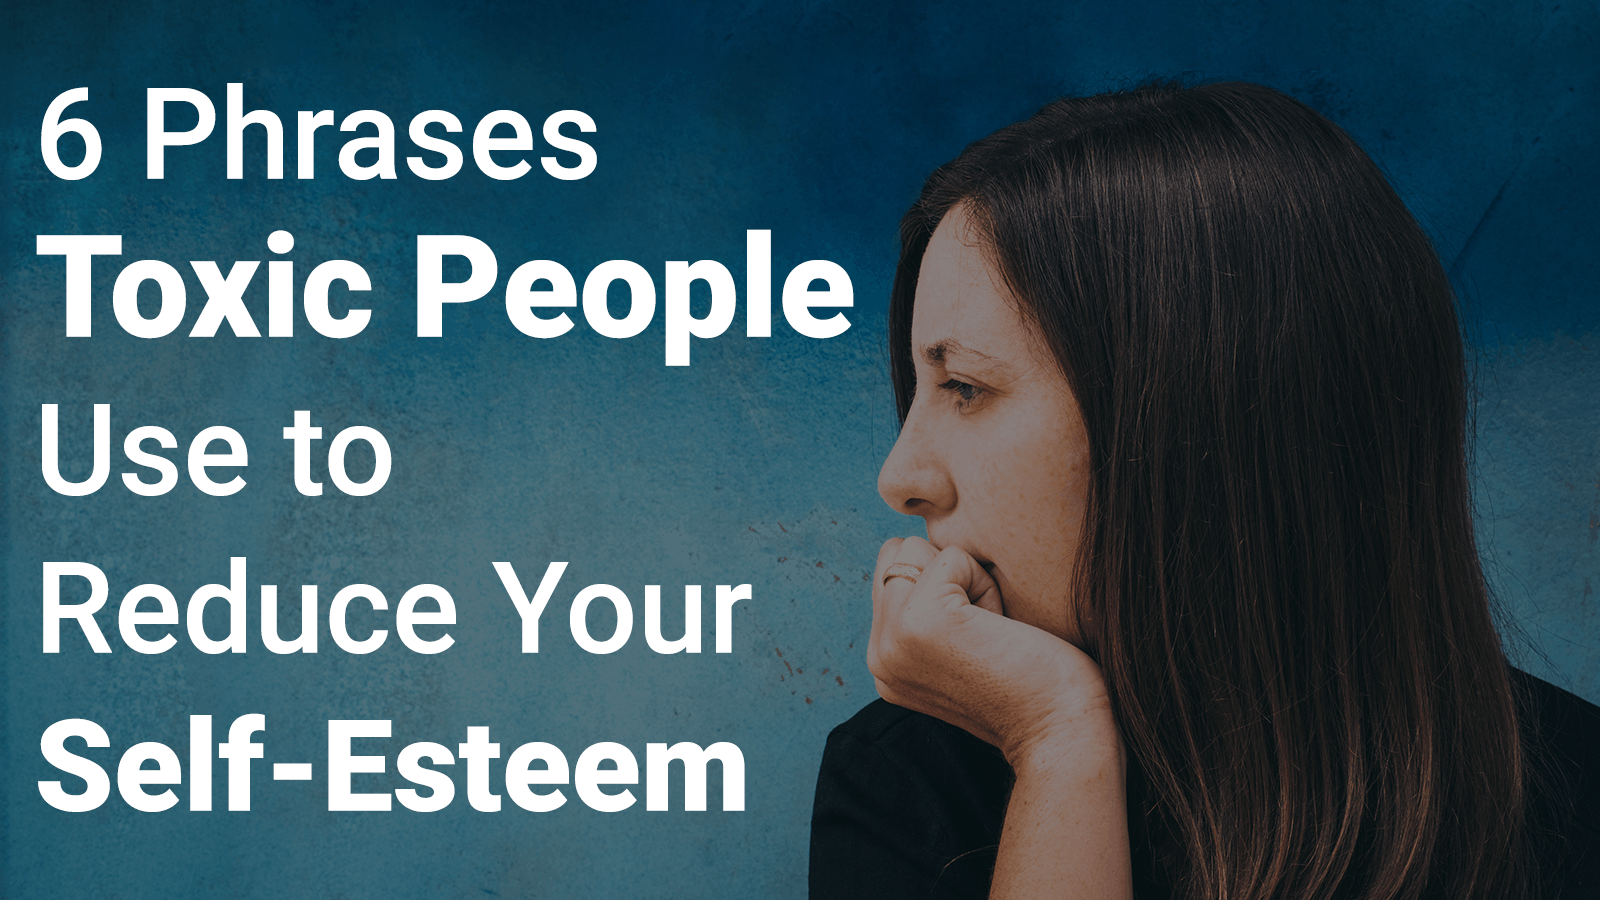 6 Phrases Toxic People Use to Reduce Your Self-Esteem